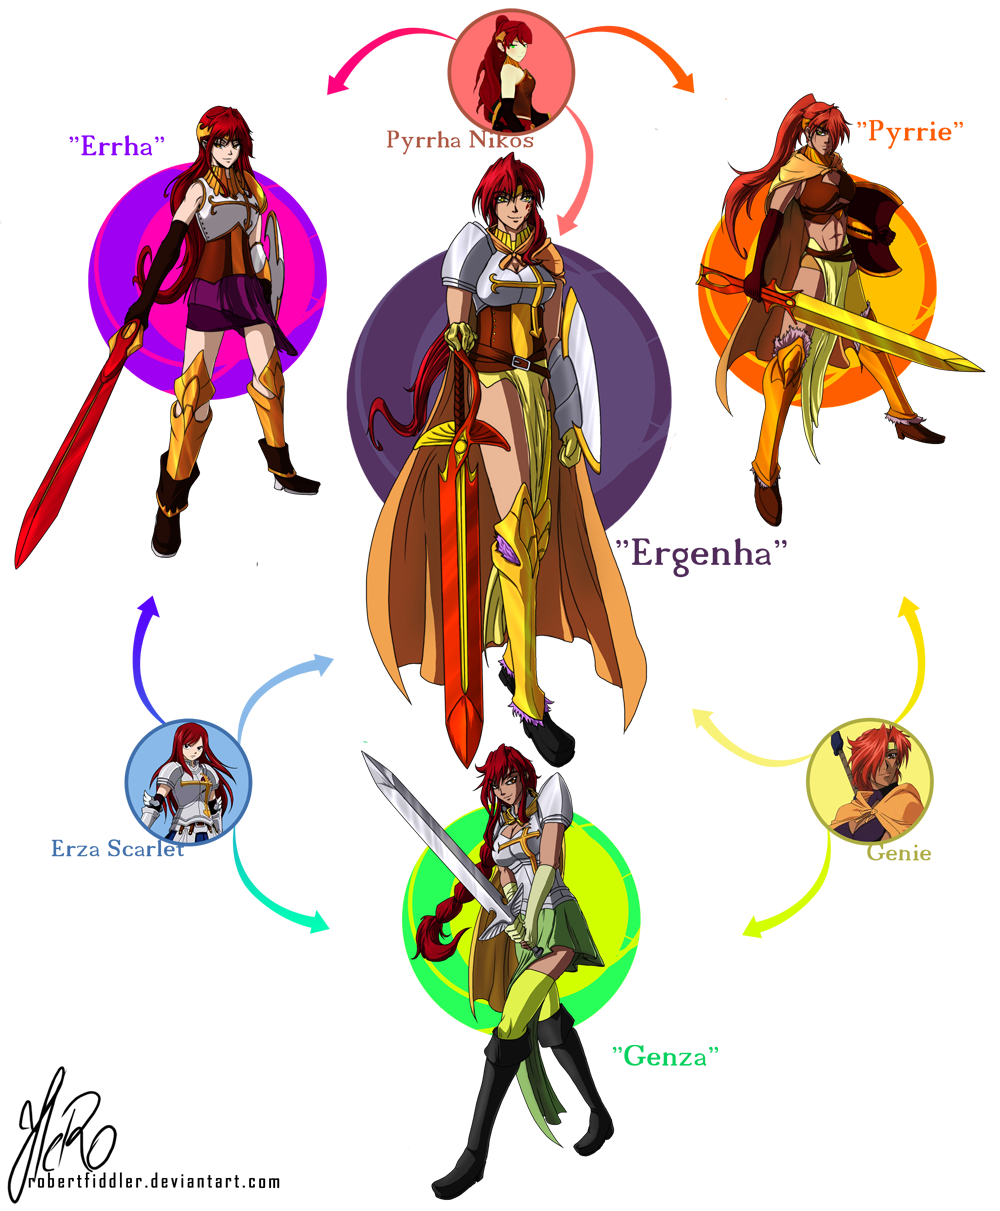 Erza Scarlet And Pyrrha Nikos Rune Soldier And Etc Drawn By